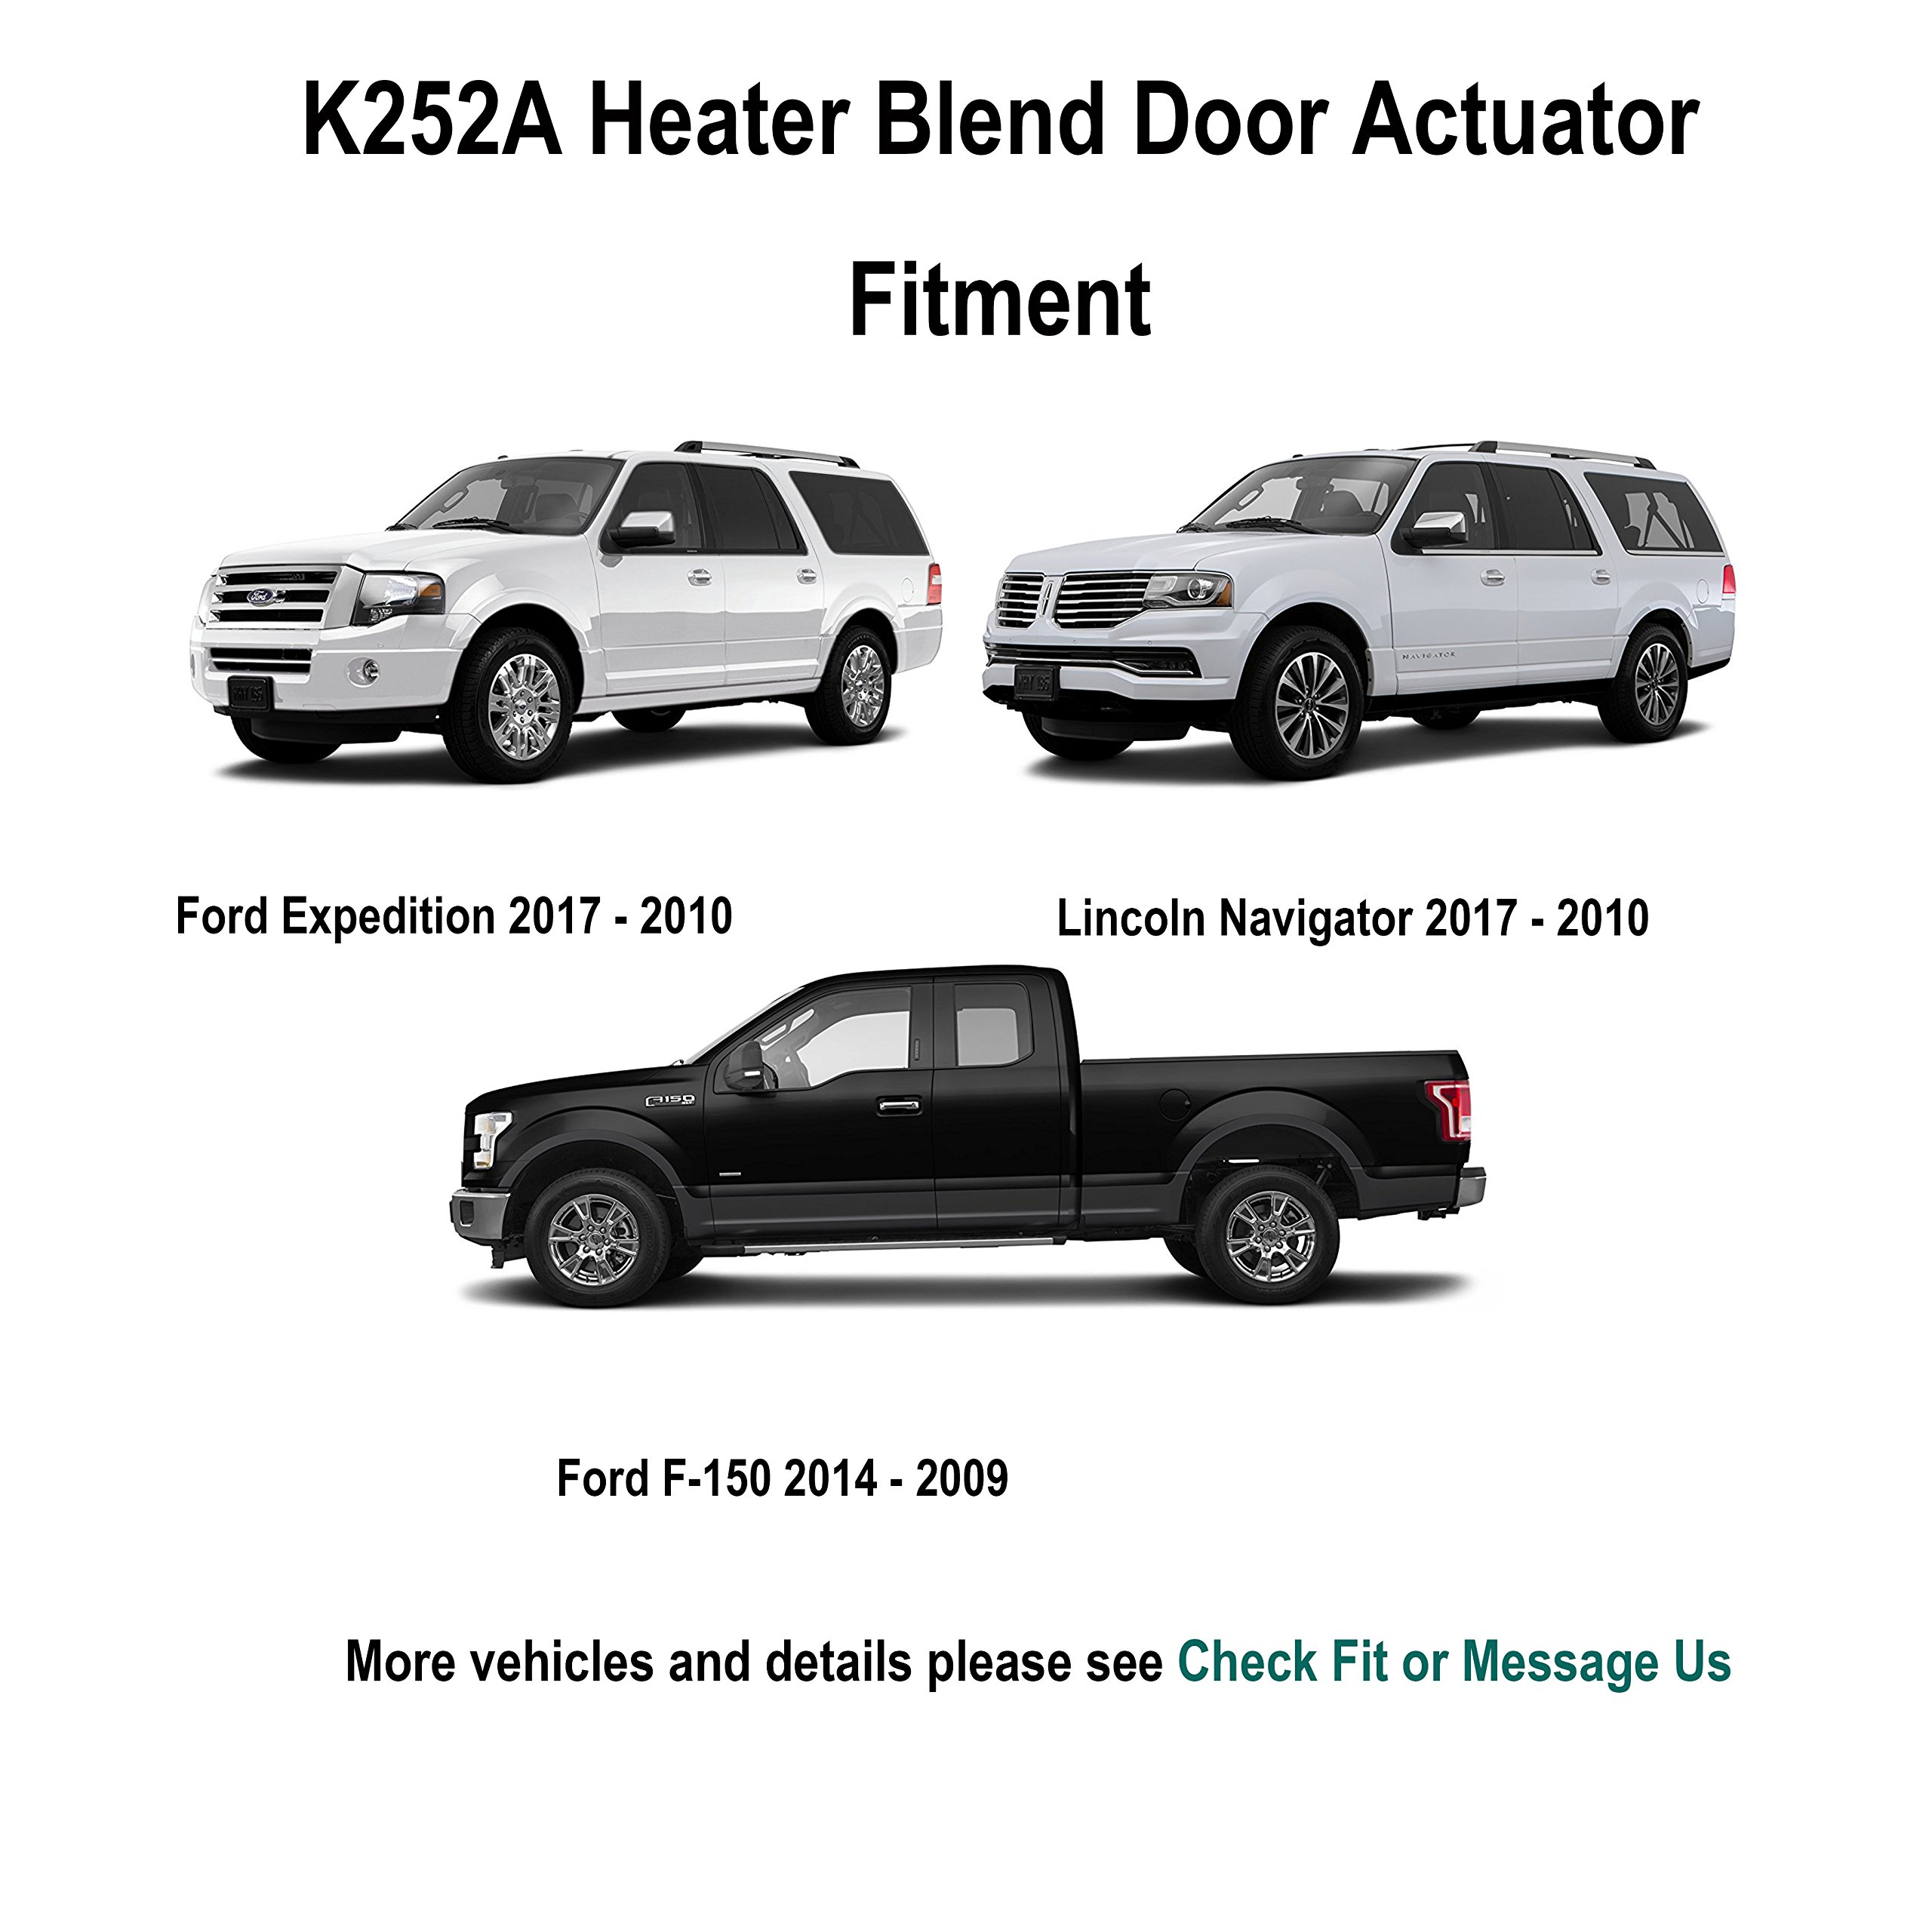 Maxresdefault additionally Noname in addition Hqdefault besides Dsc as well Blenddoor Explorerfig. on 2003 ford expedition rear blend door actuator